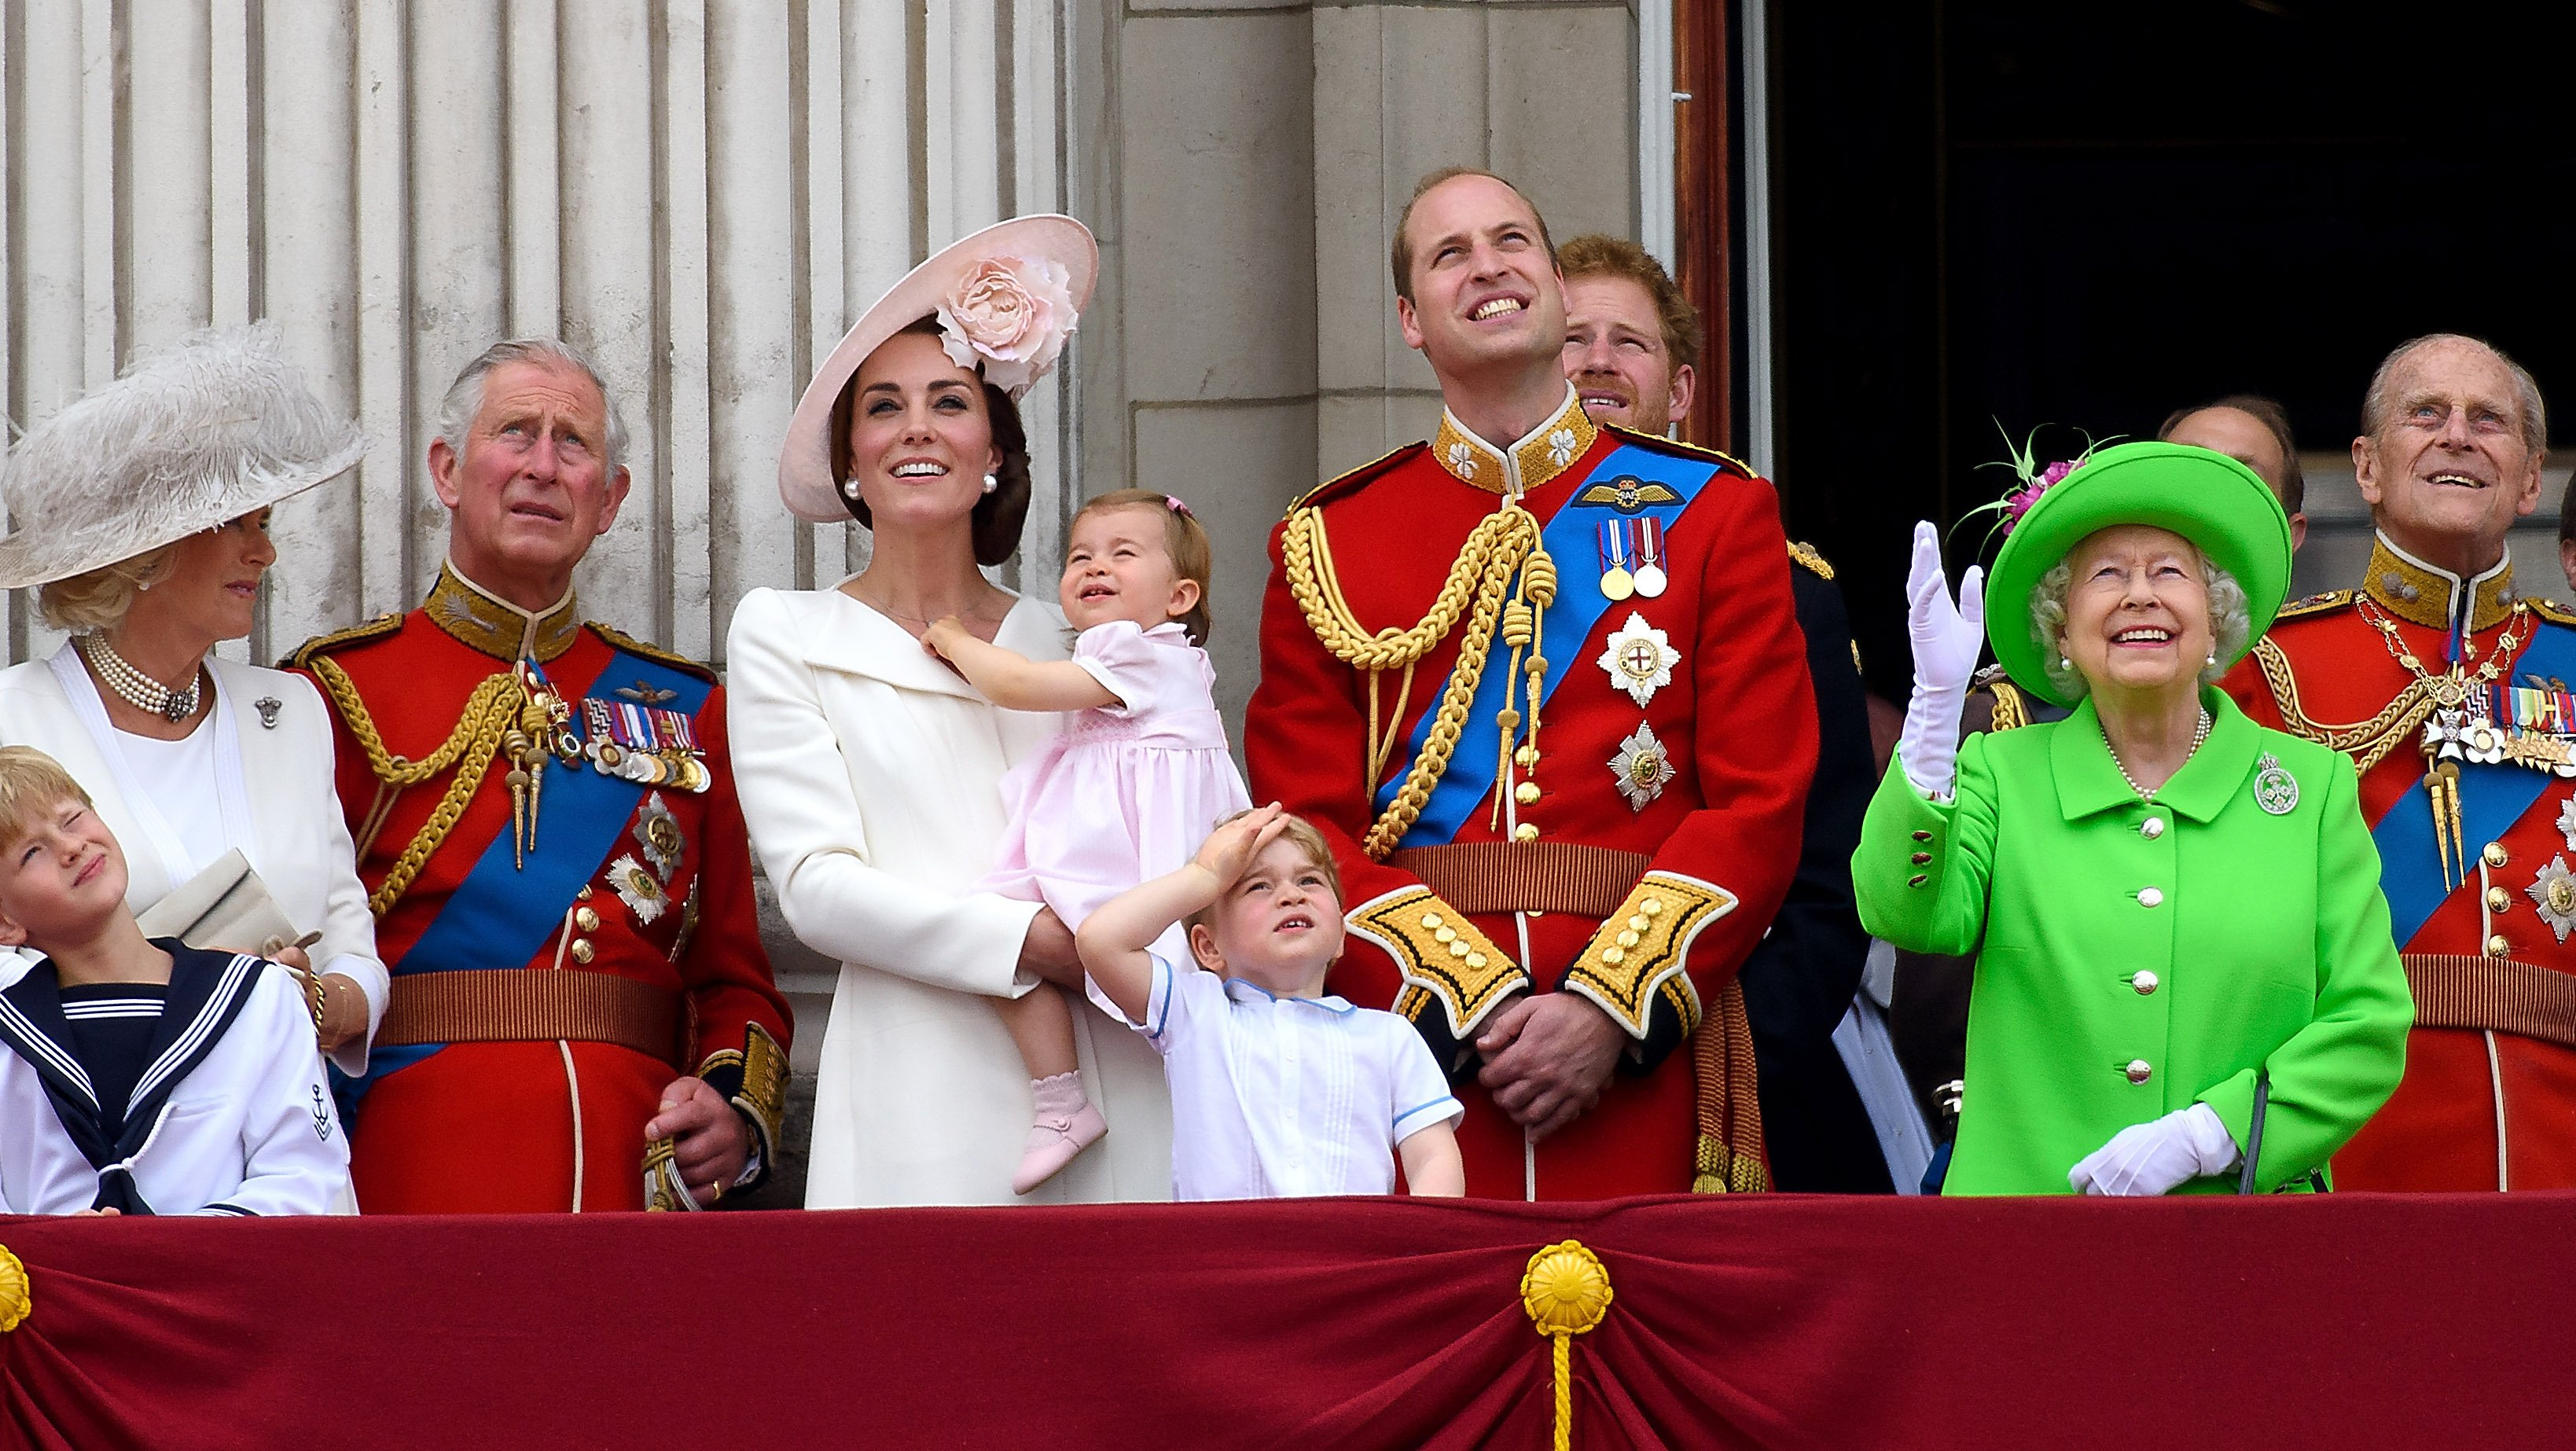 Senior members of the royal family stand on the balcony during the Trooping the Colour on June 11, 2016, in London, England. | Source: Getty Images.